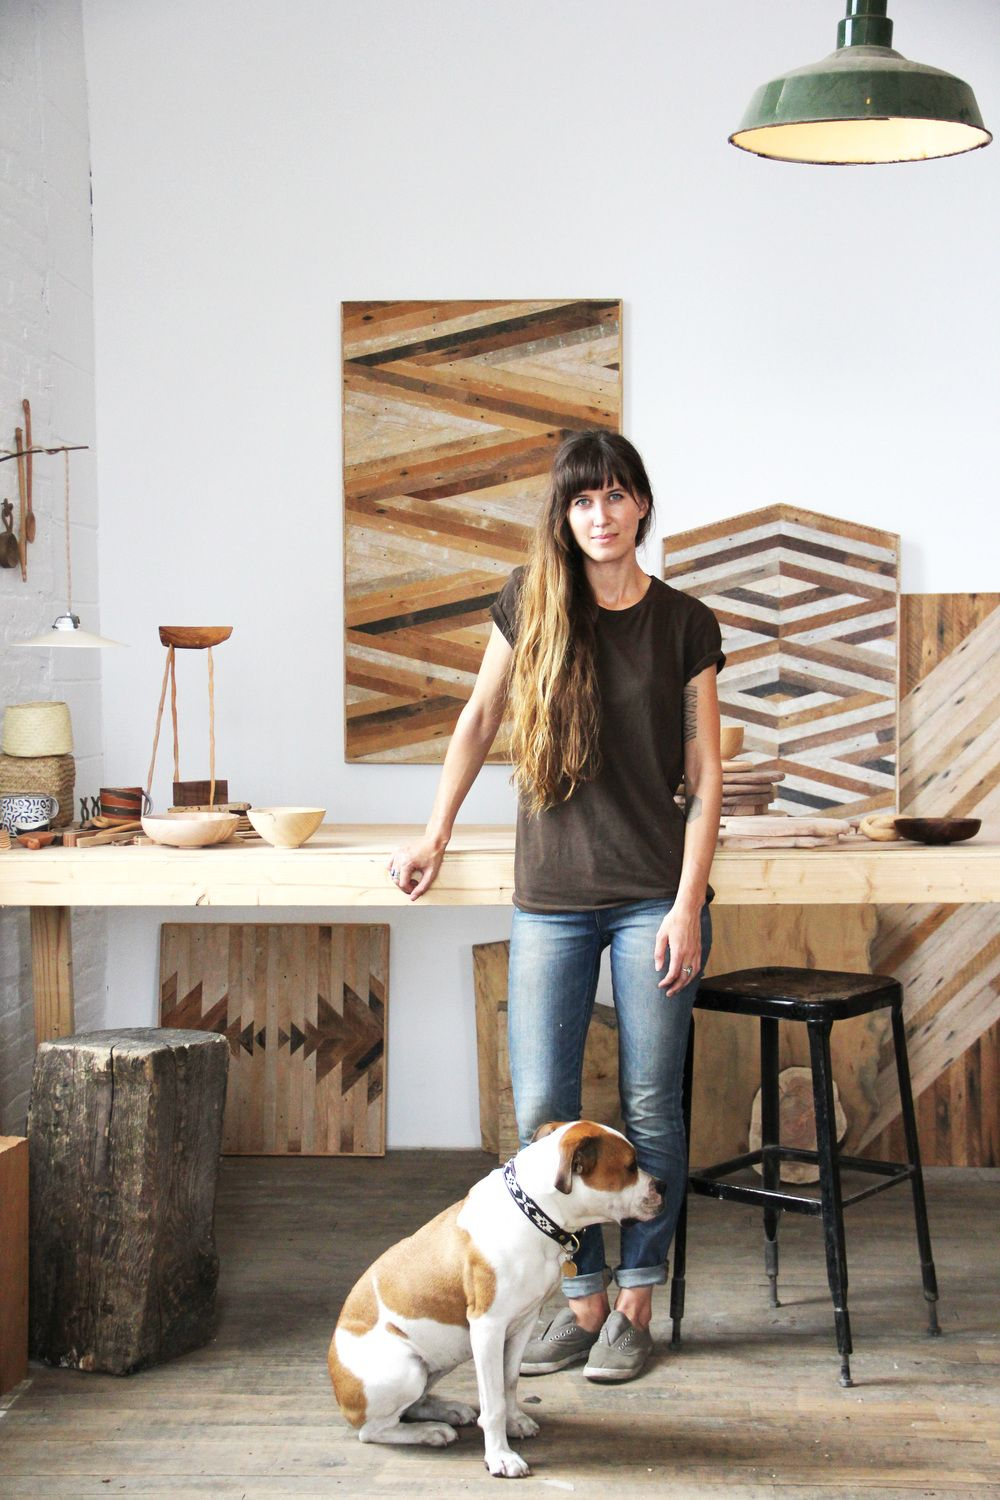 Ariele Alasko Is A Full Time Woodworker Living In Brooklyn Ny Woodworking Inspiration Wood Woodworking